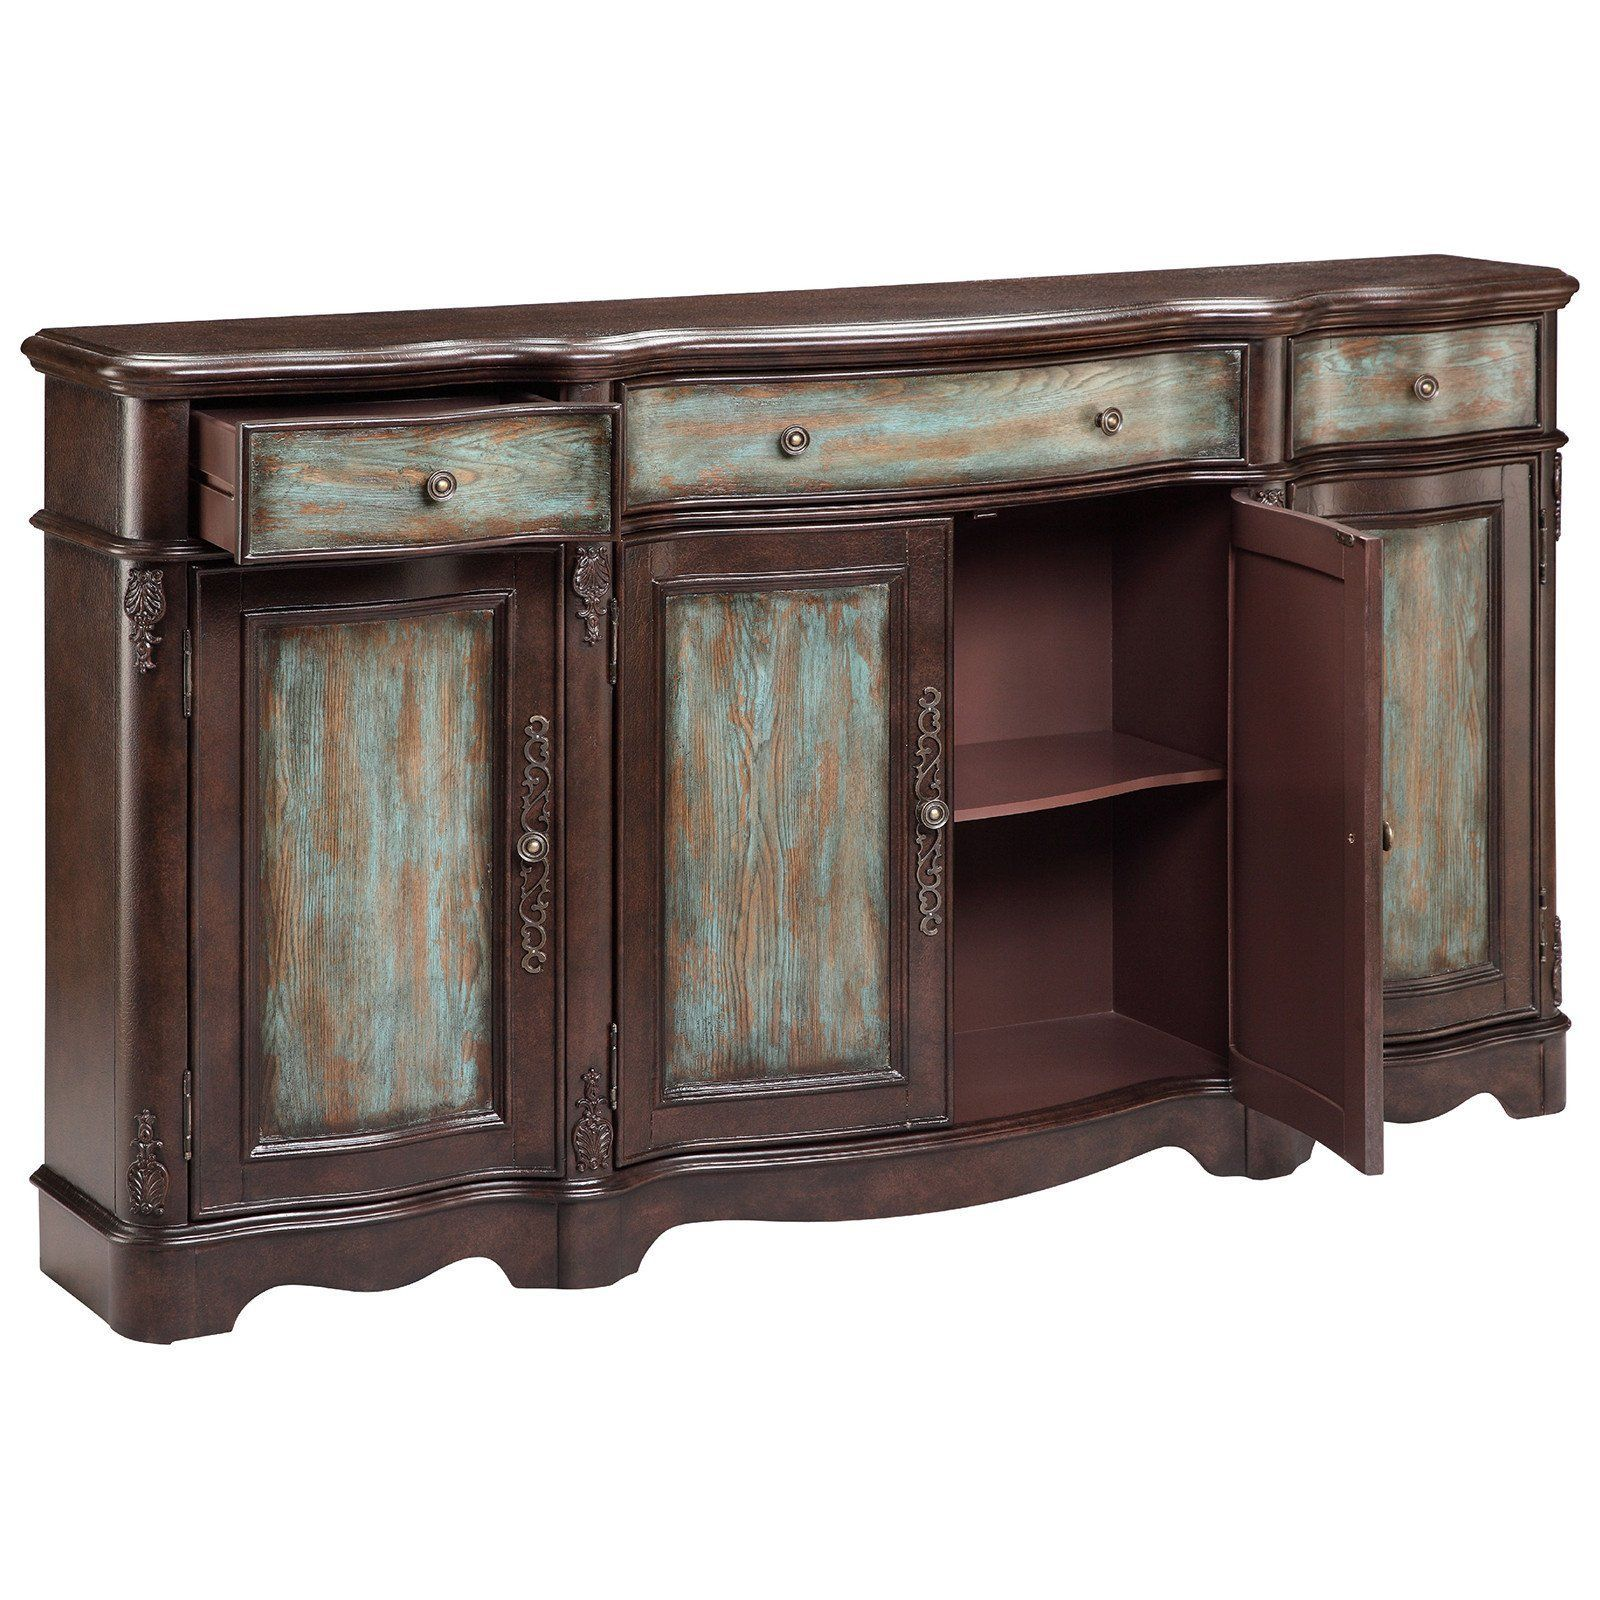 The Laurie Sideboard Has Charm, Character, Elegance And Sophisticated Flair